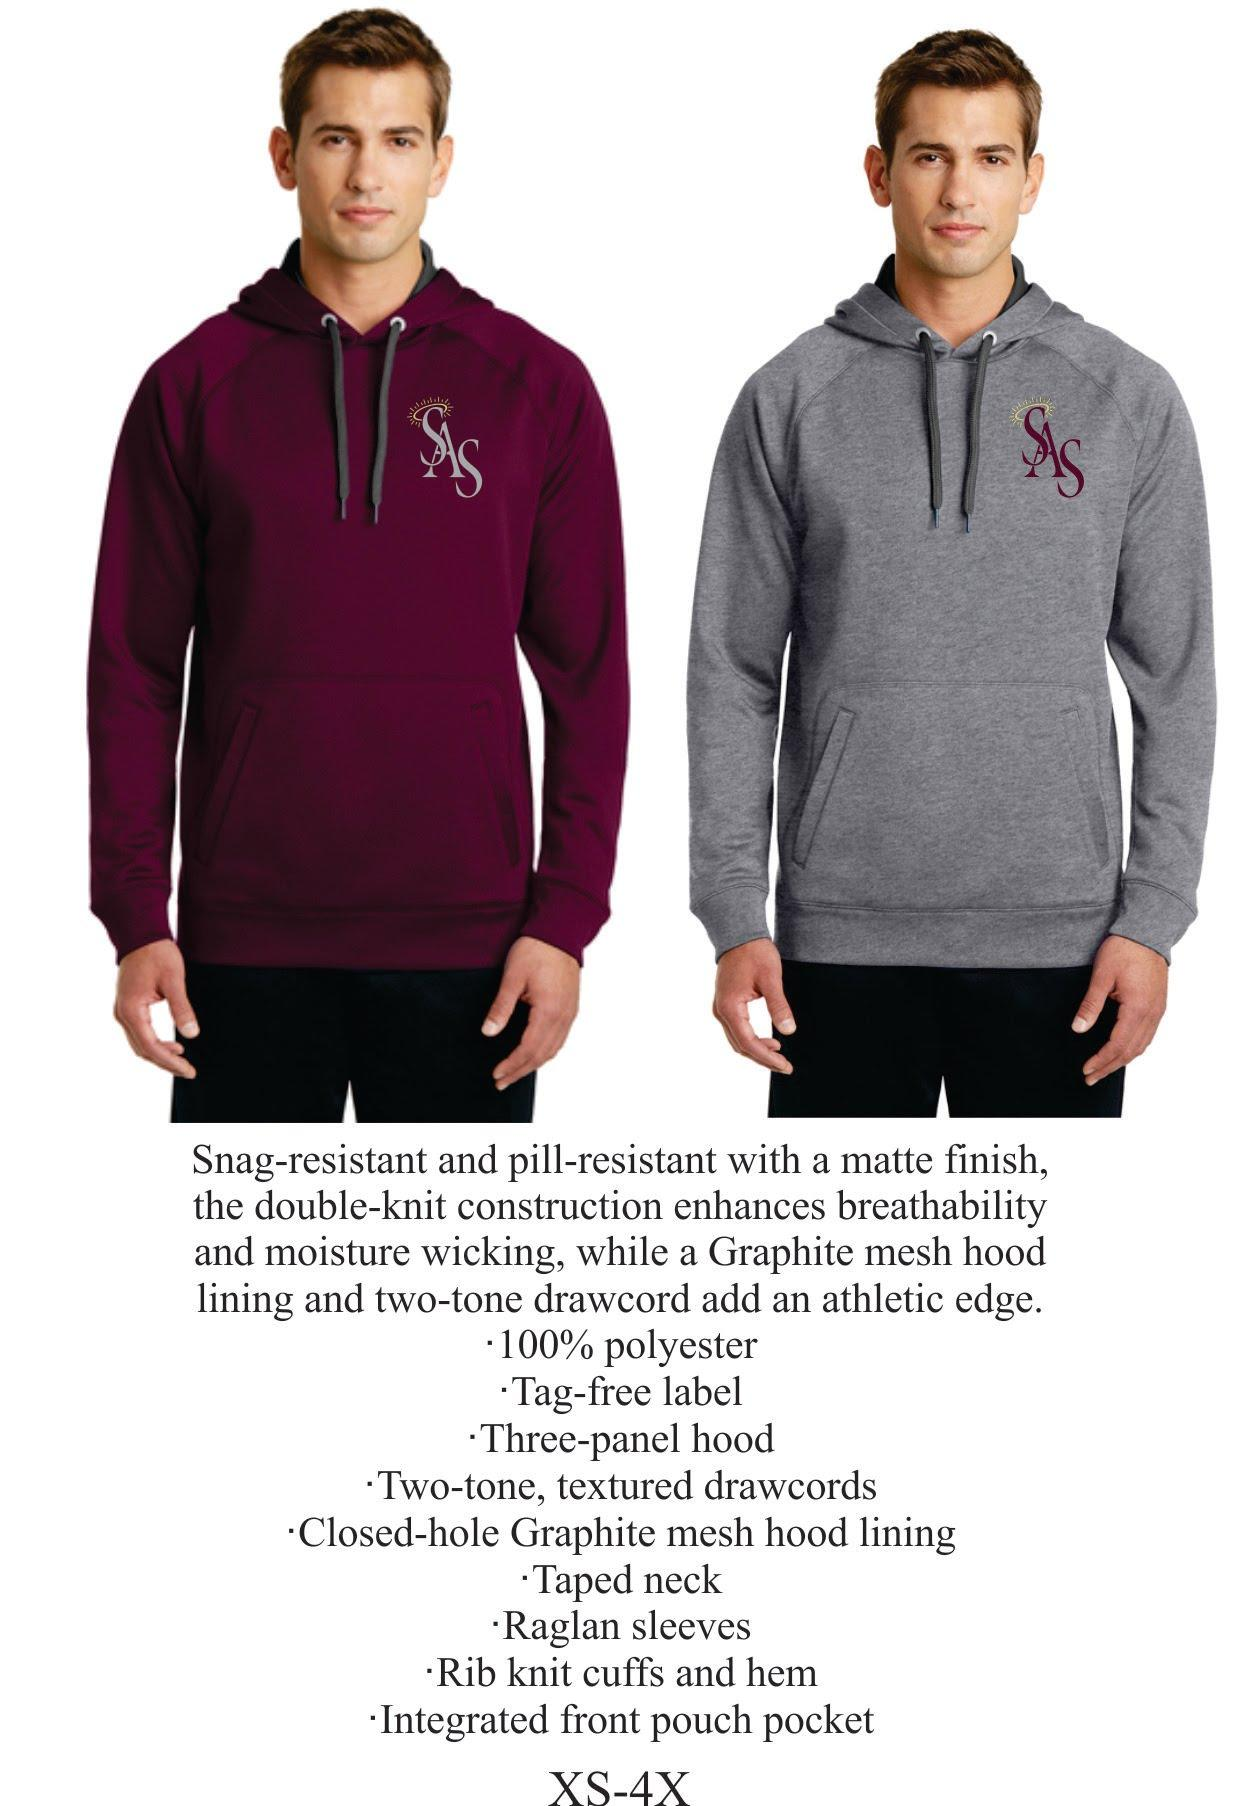 Hooded Sweatshirt Maroon or Gray 100% Polyester w/ SAS Logo